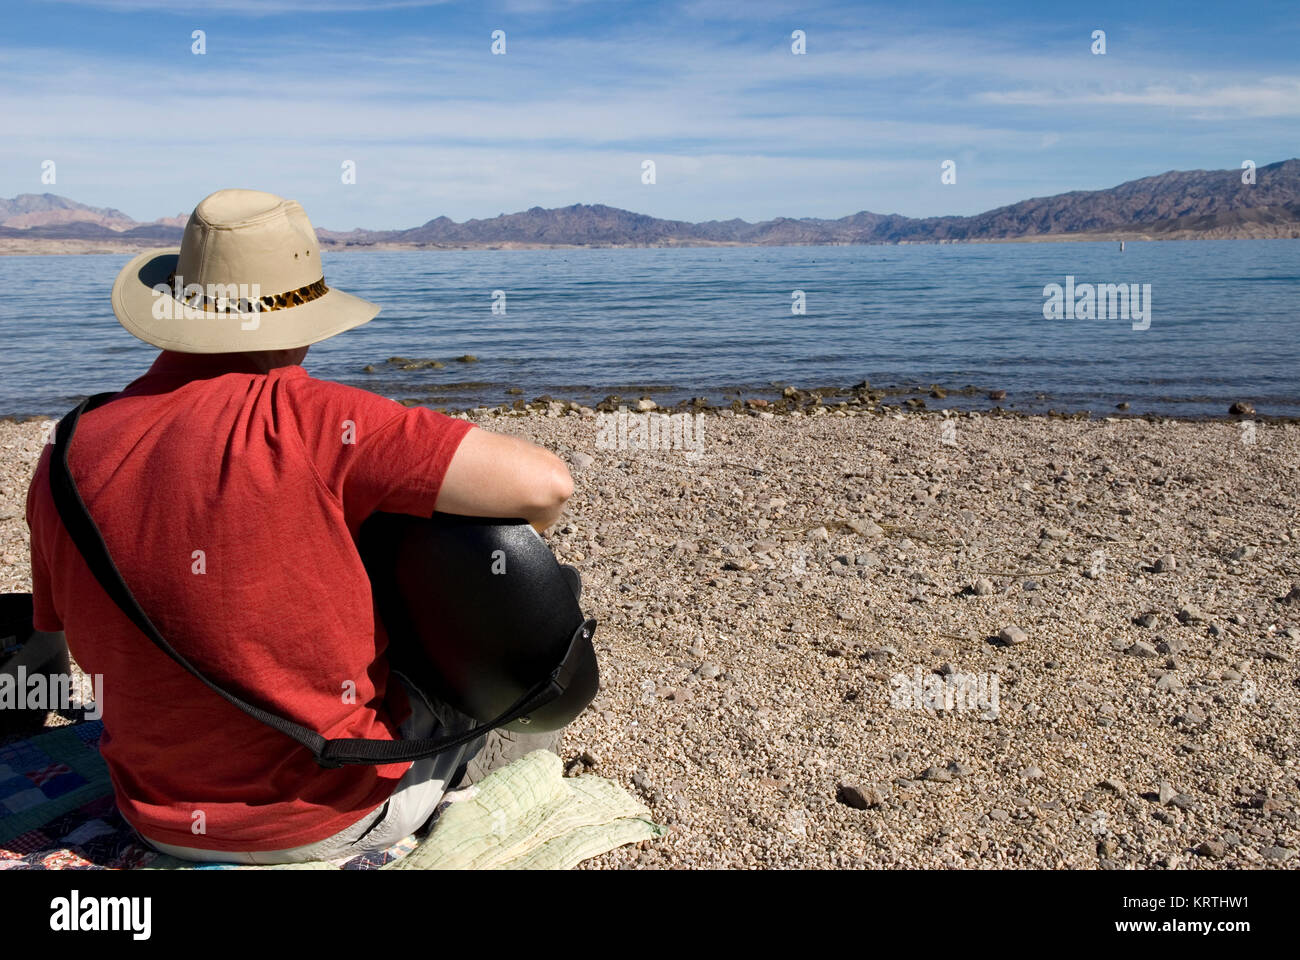 Man plays guitar on beach at Lake Mead National Recreation Area Nevada, USA. Stock Photo